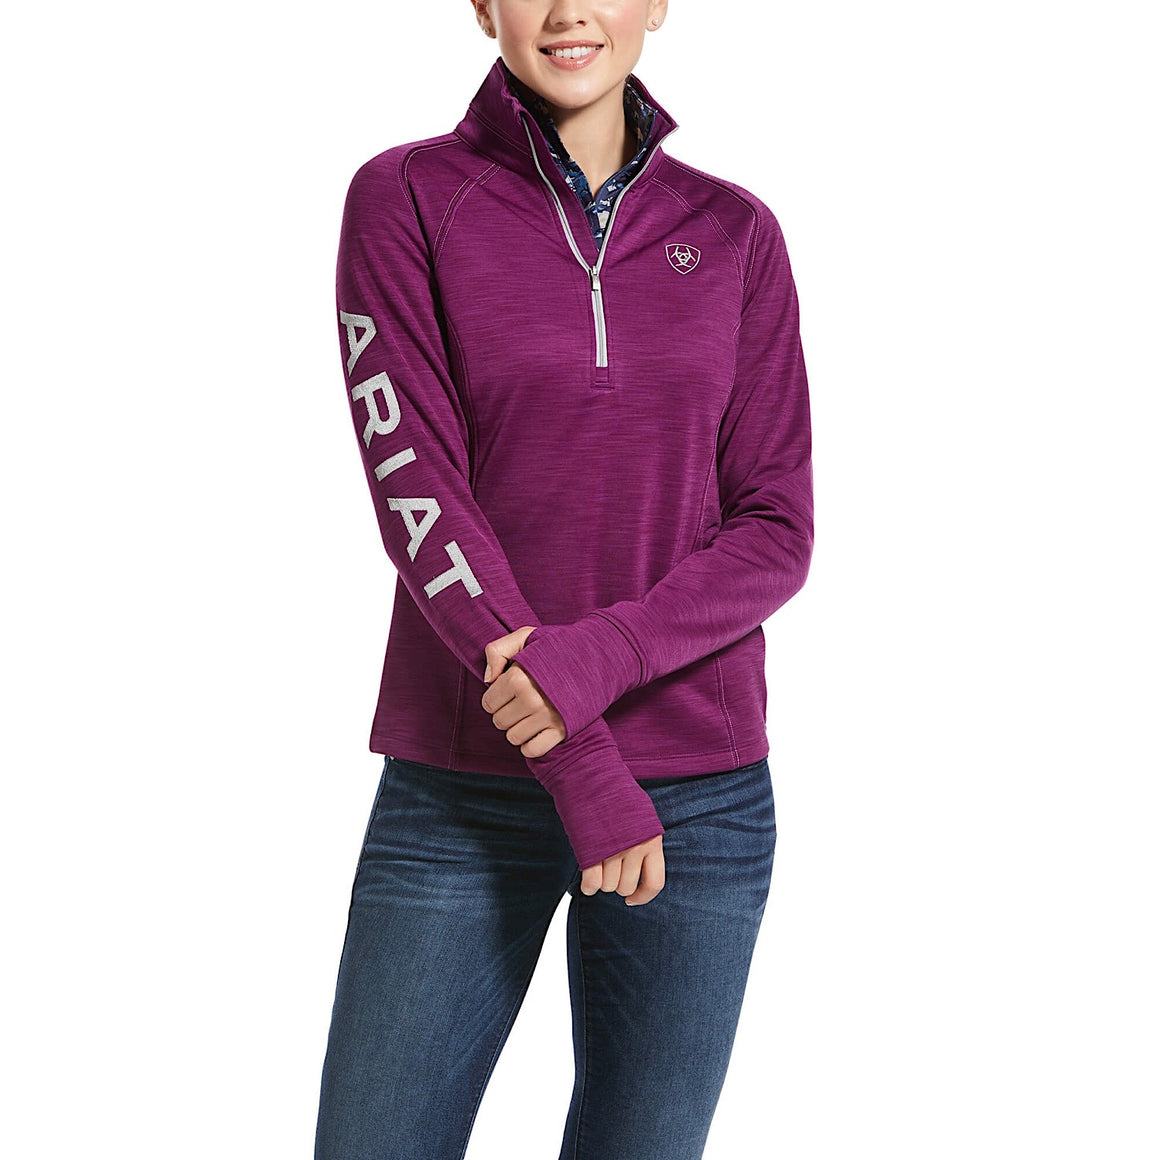 Ariat Womens Tek Team 1/2 Zip Sweatshirt Imperial Violet Heather